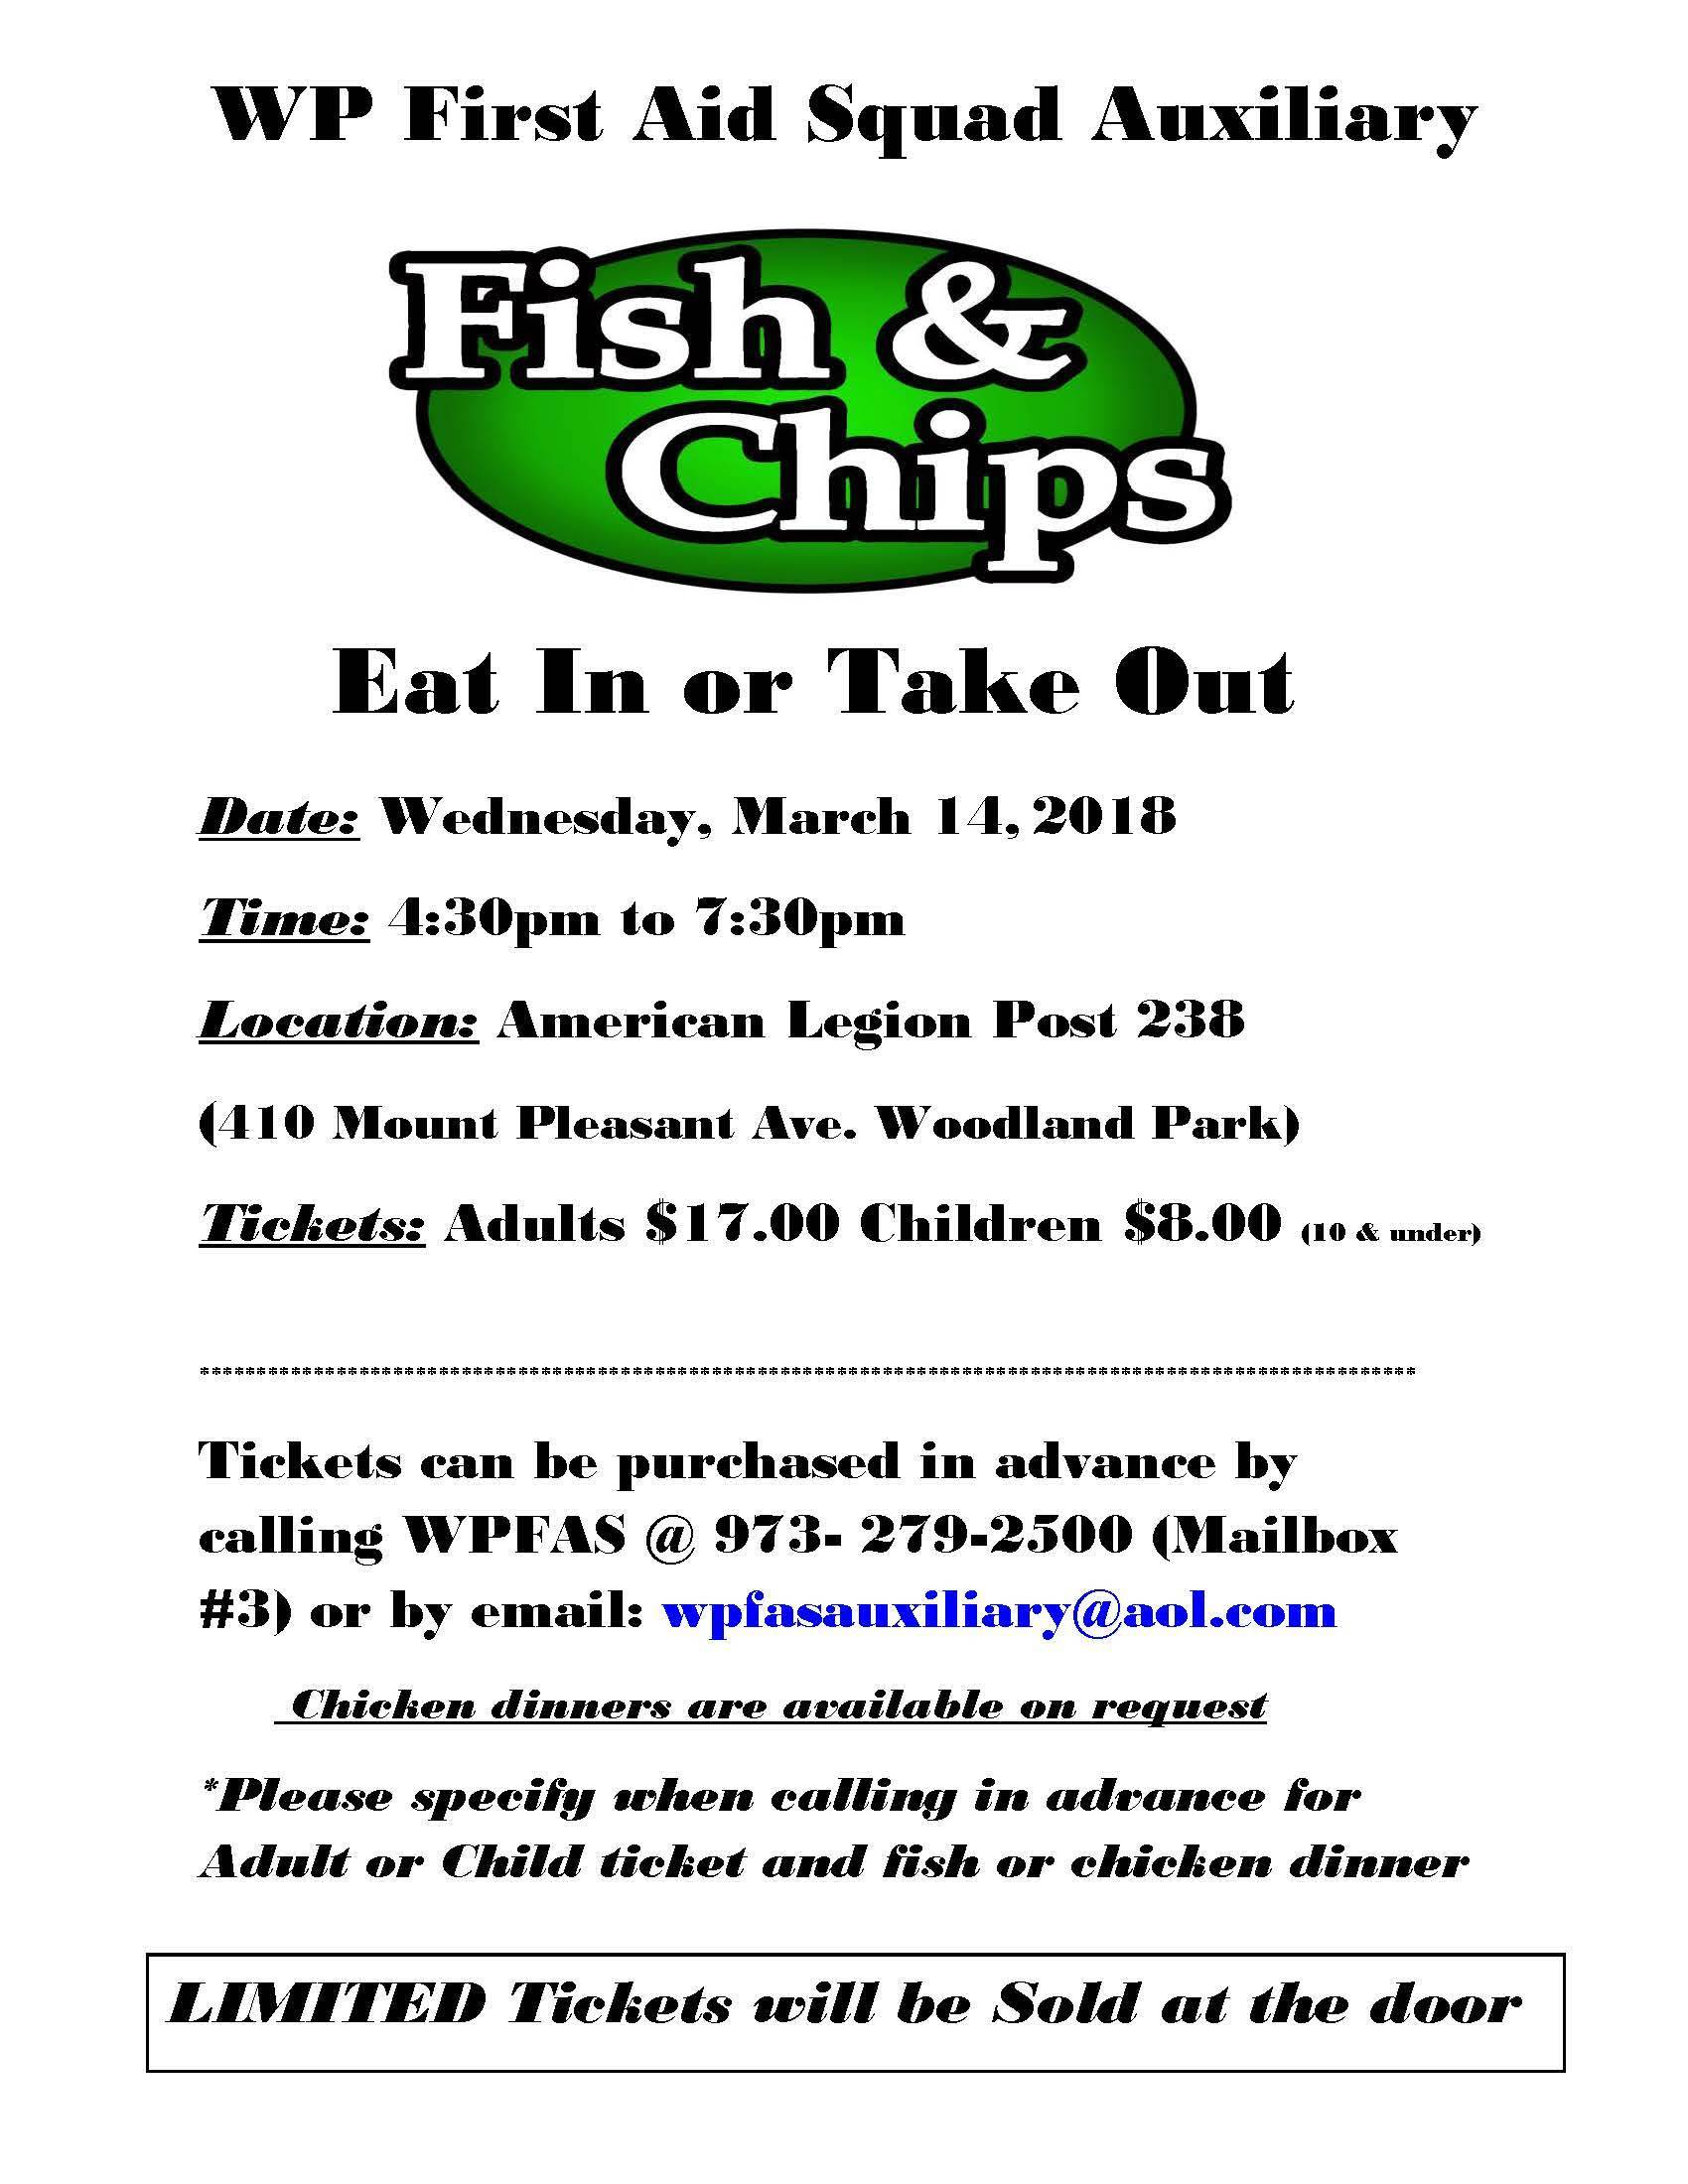 West Paterson First Aid Squad Plans Fundraising Fish